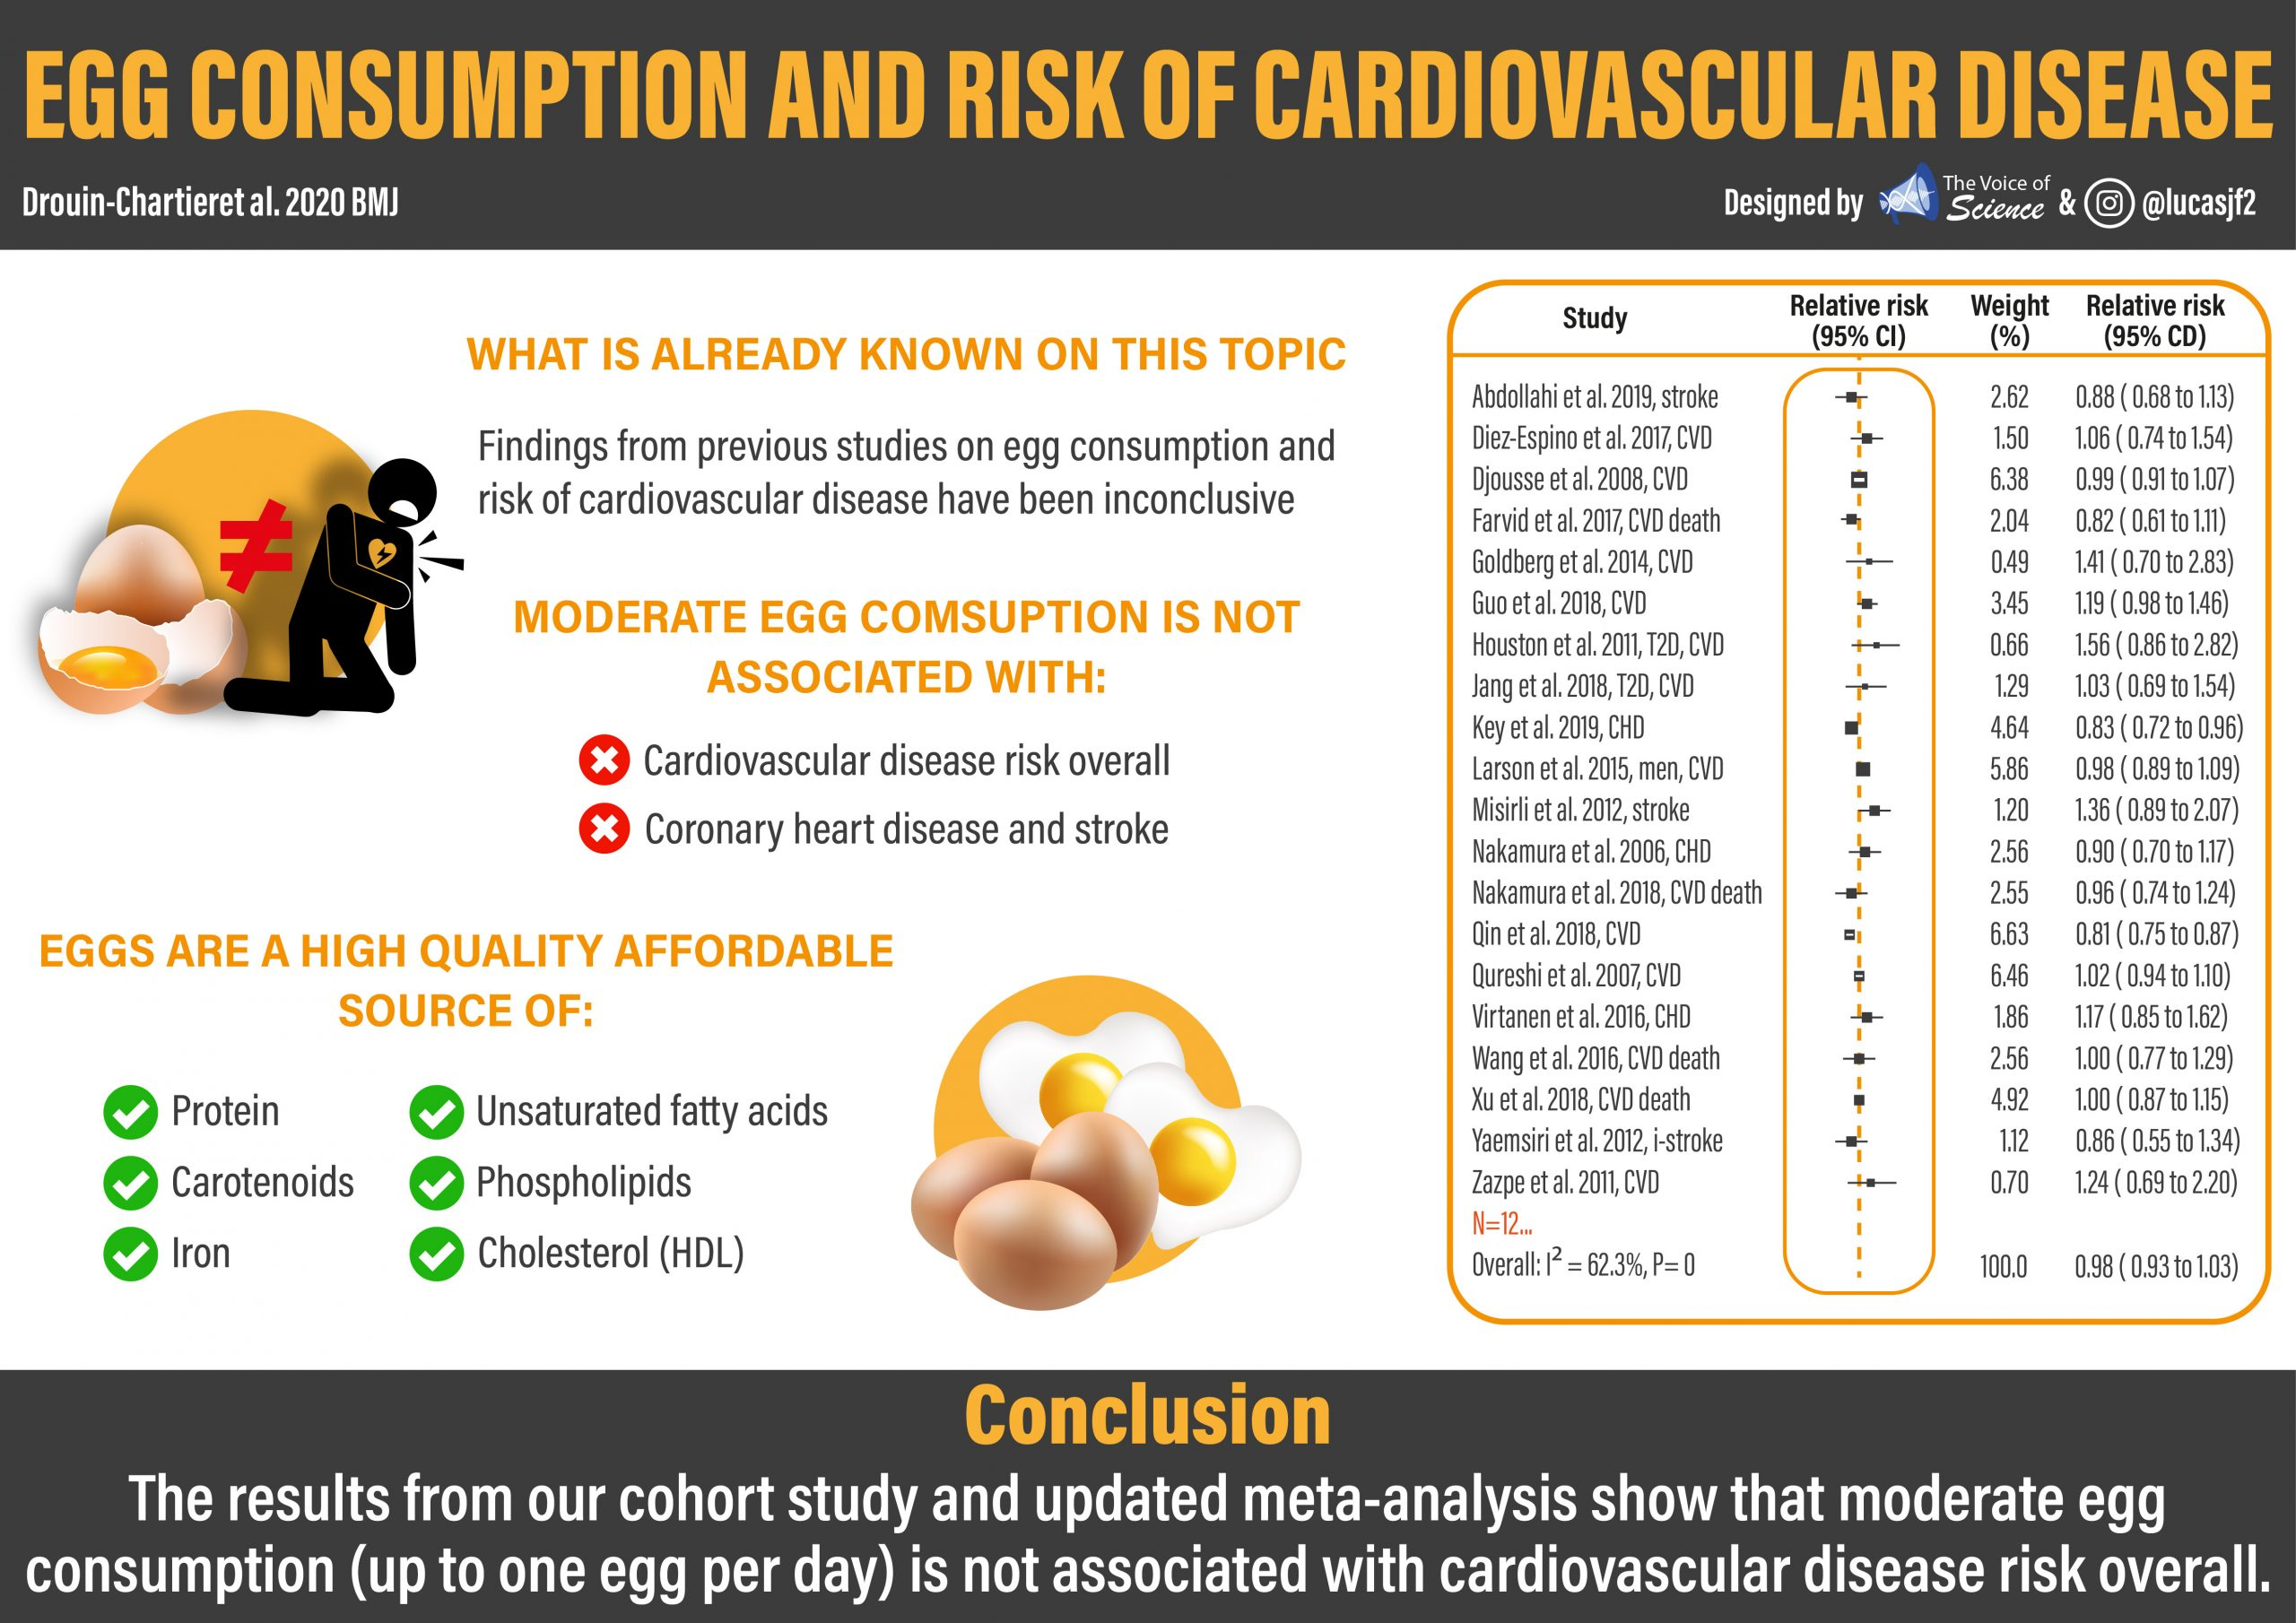 Egg consumption and risk of cardiovascular disease